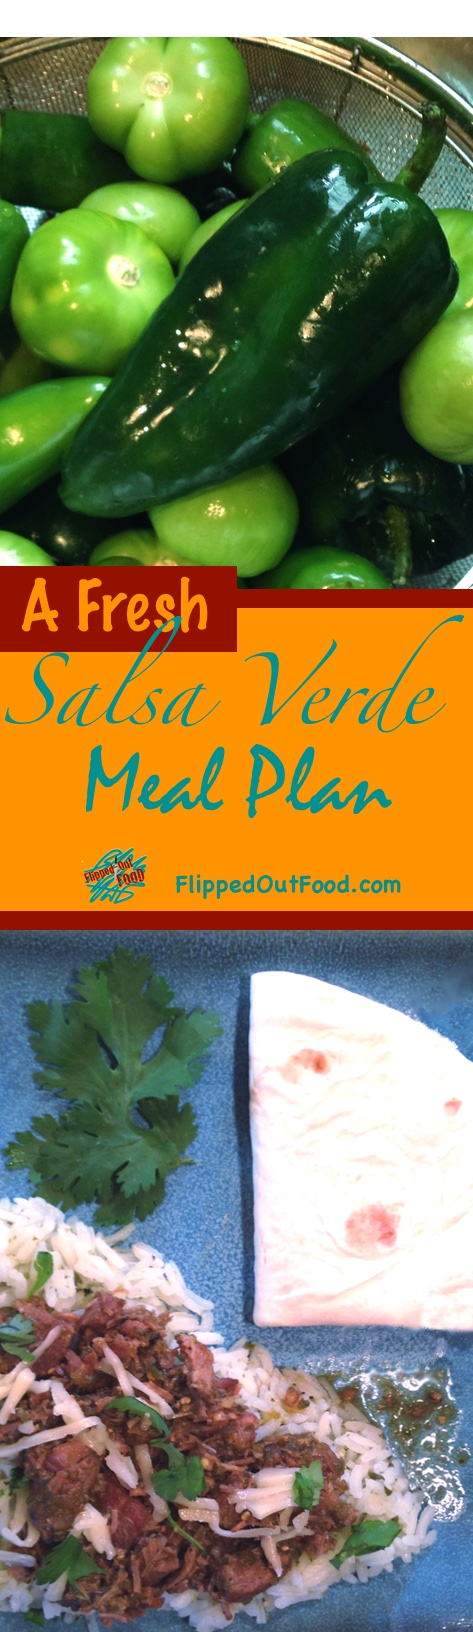 Make your own fresh, fantastic salsa verde to use in Pork Salsa Verde and Enchiladas Suizas. Or just nosh it with tortilla chips.